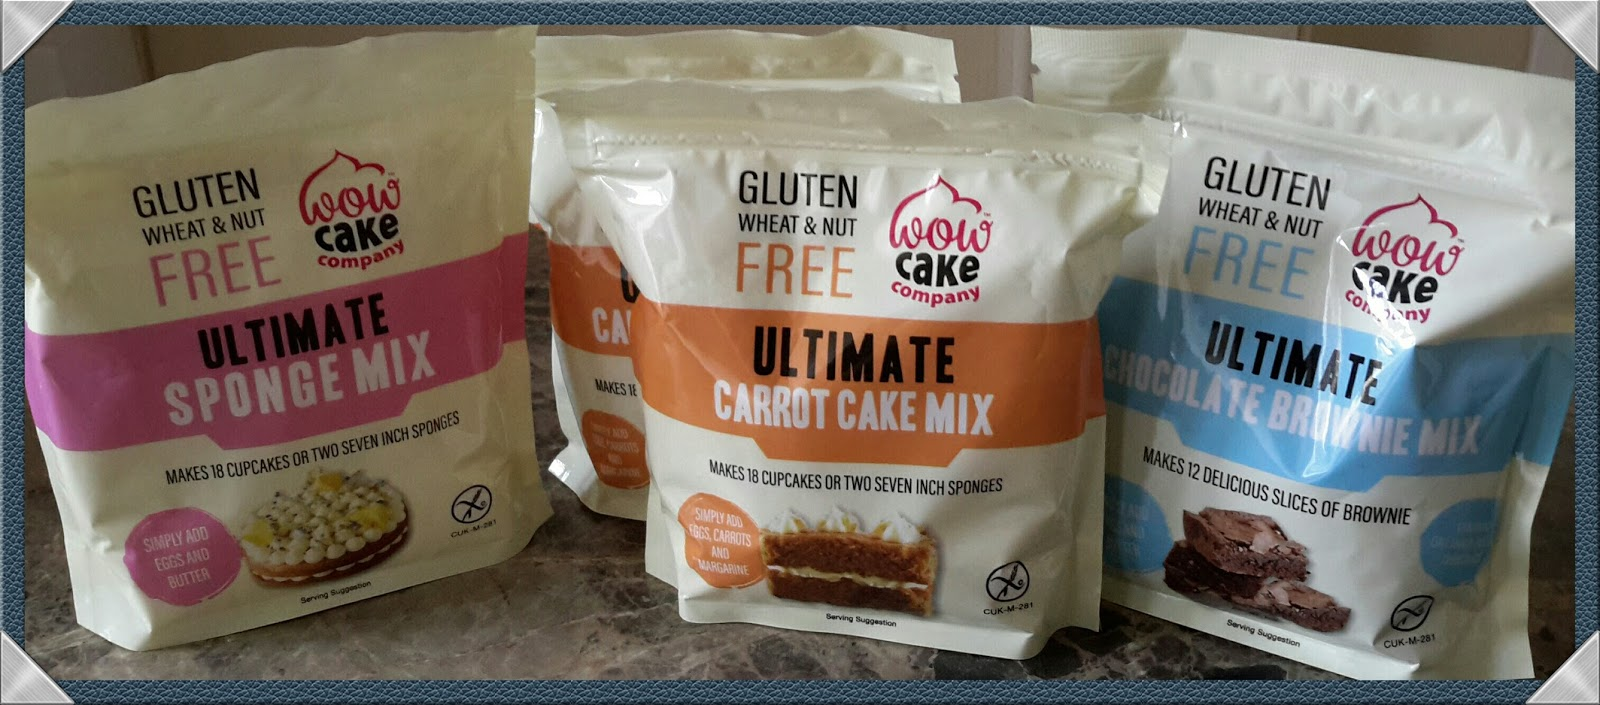 Gluten Free Chocolate Brownie The Homemade Cake Company Ingredients